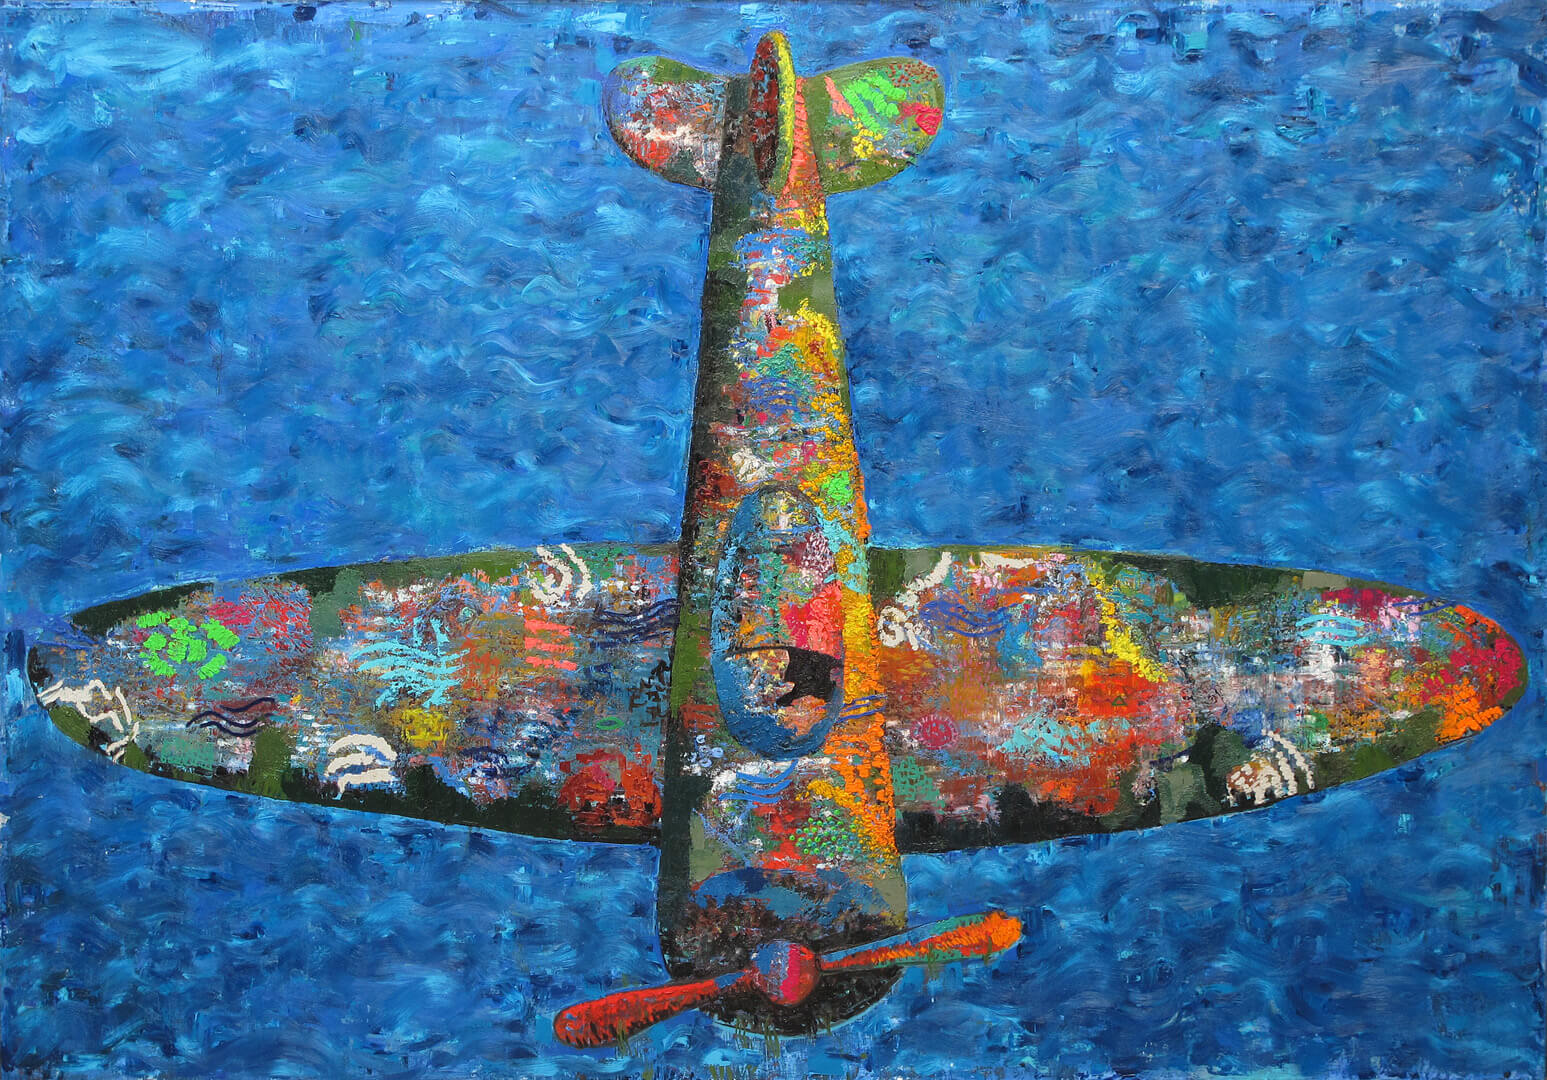 Airplane, oil on canvas, 150 x 215 cm, 2017.